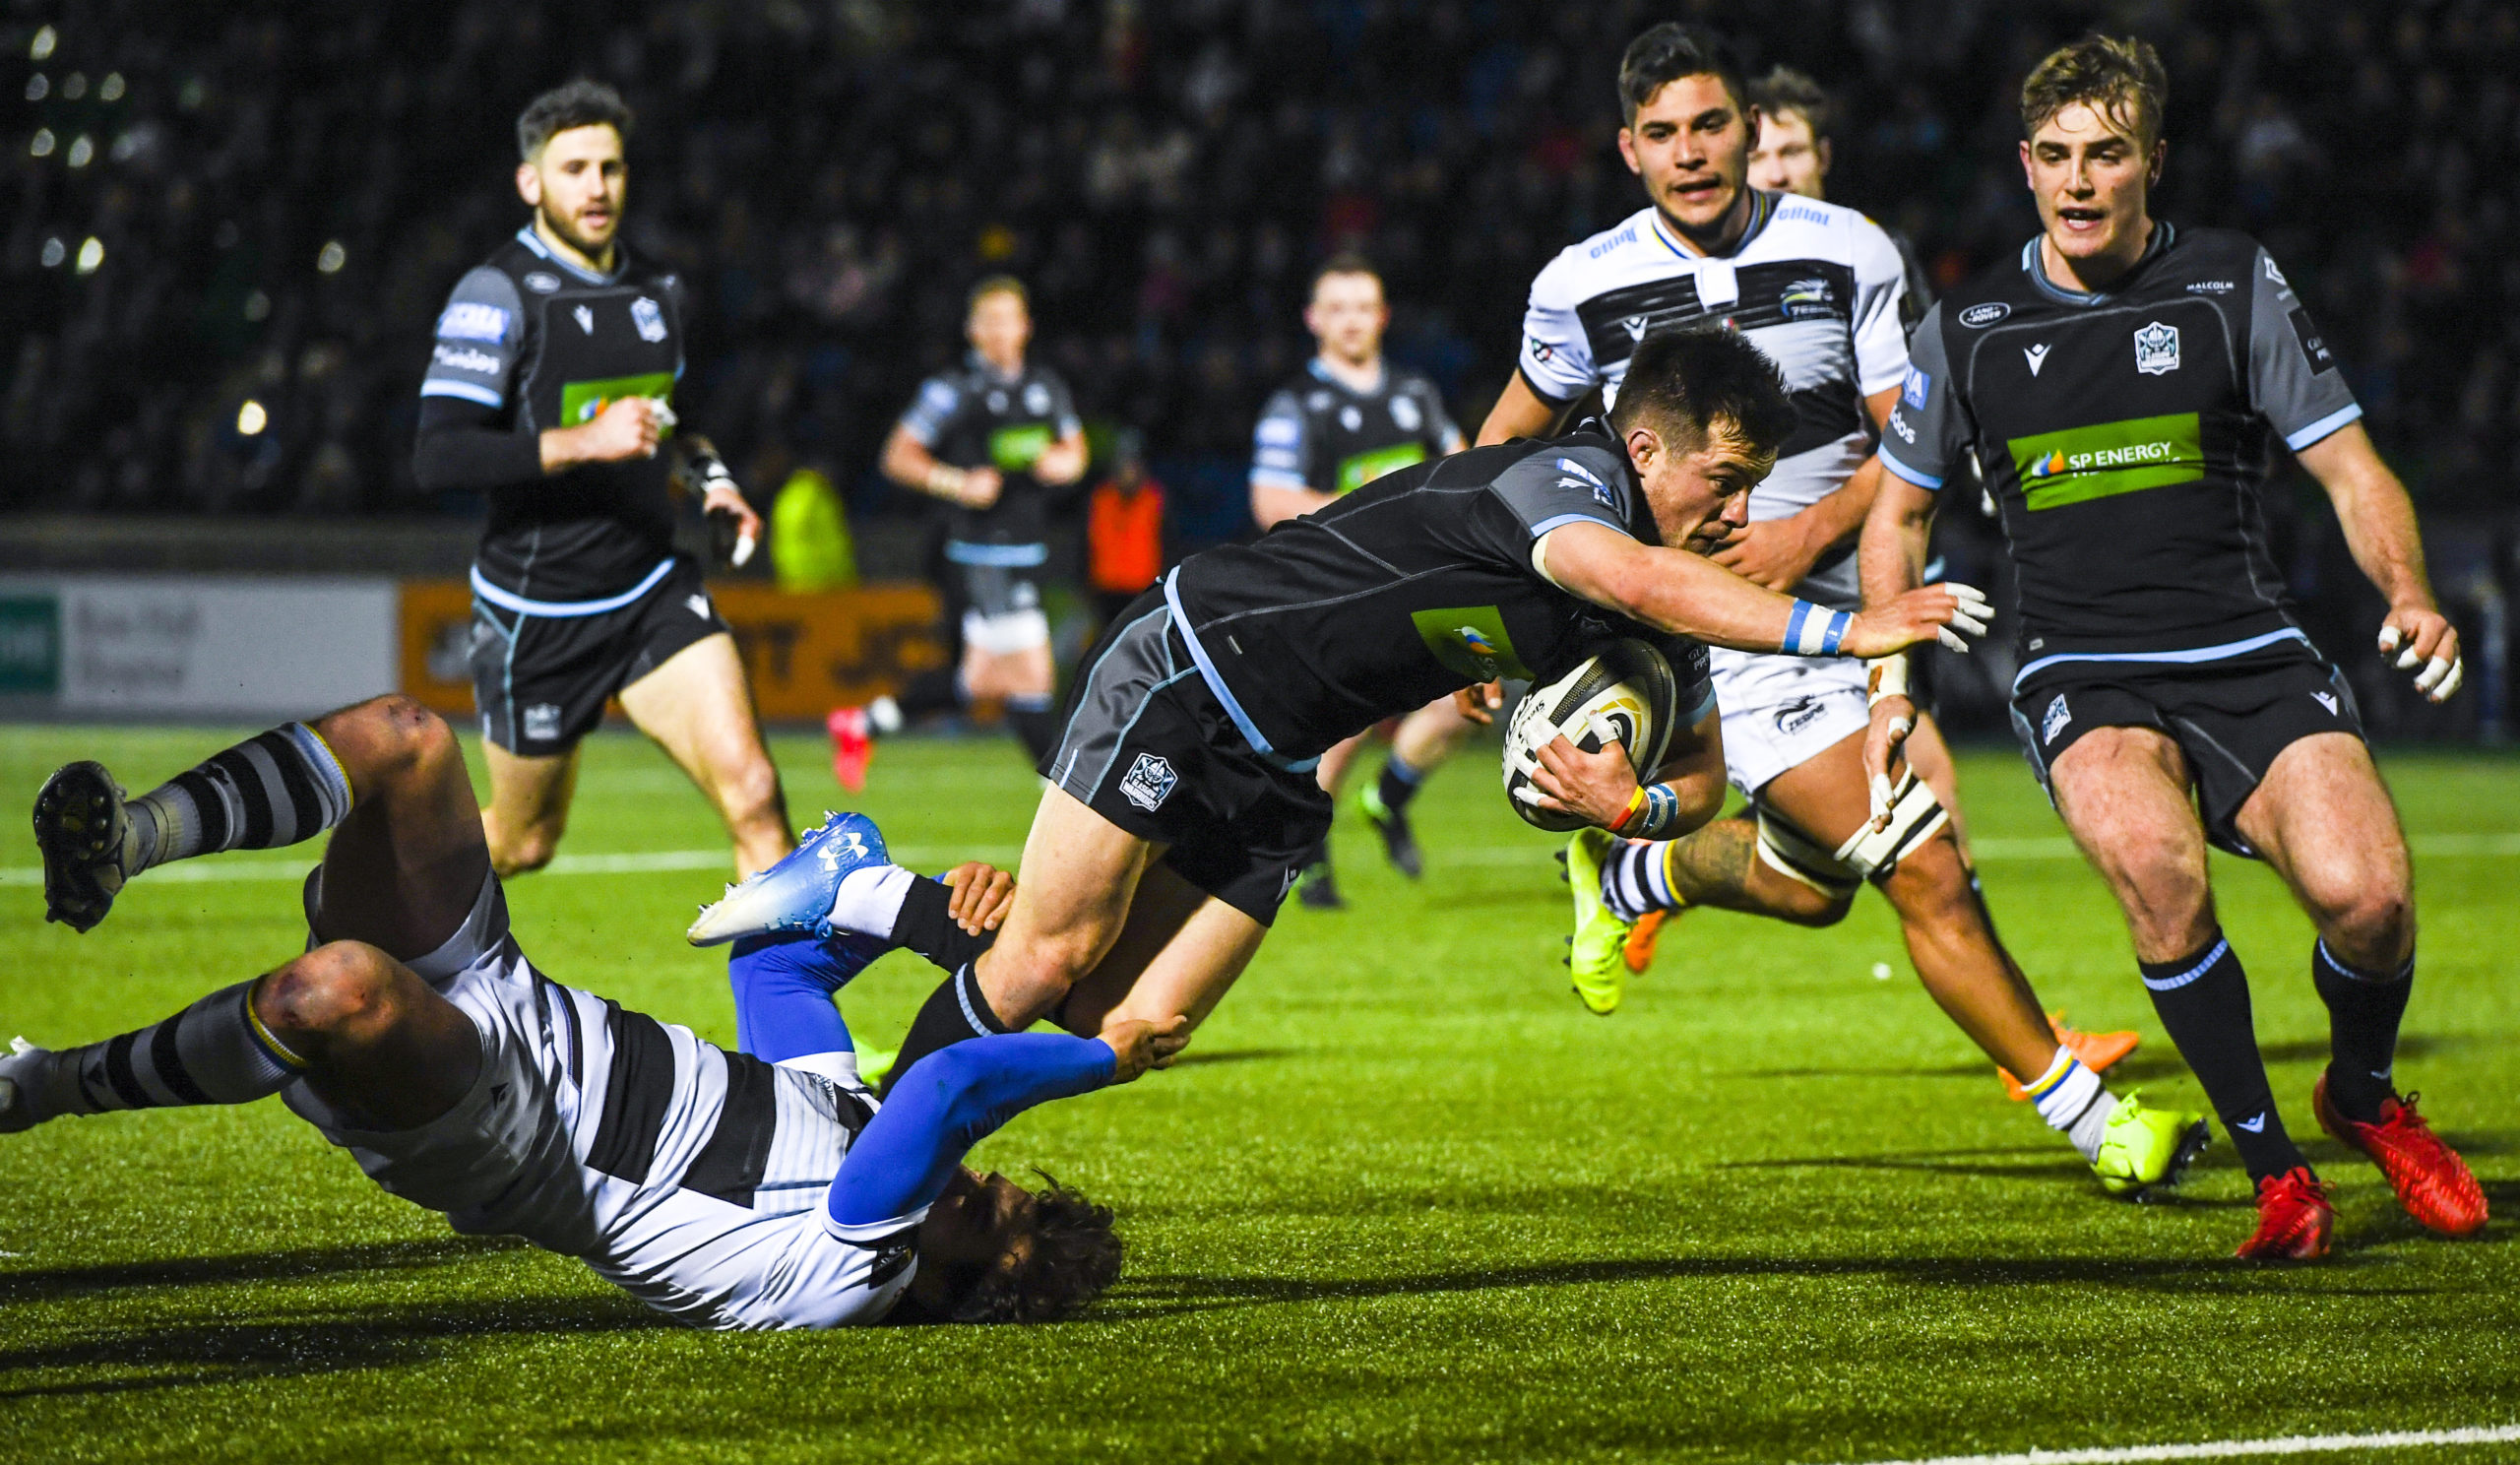 George Horne scores his second try of the night for Glasgow.